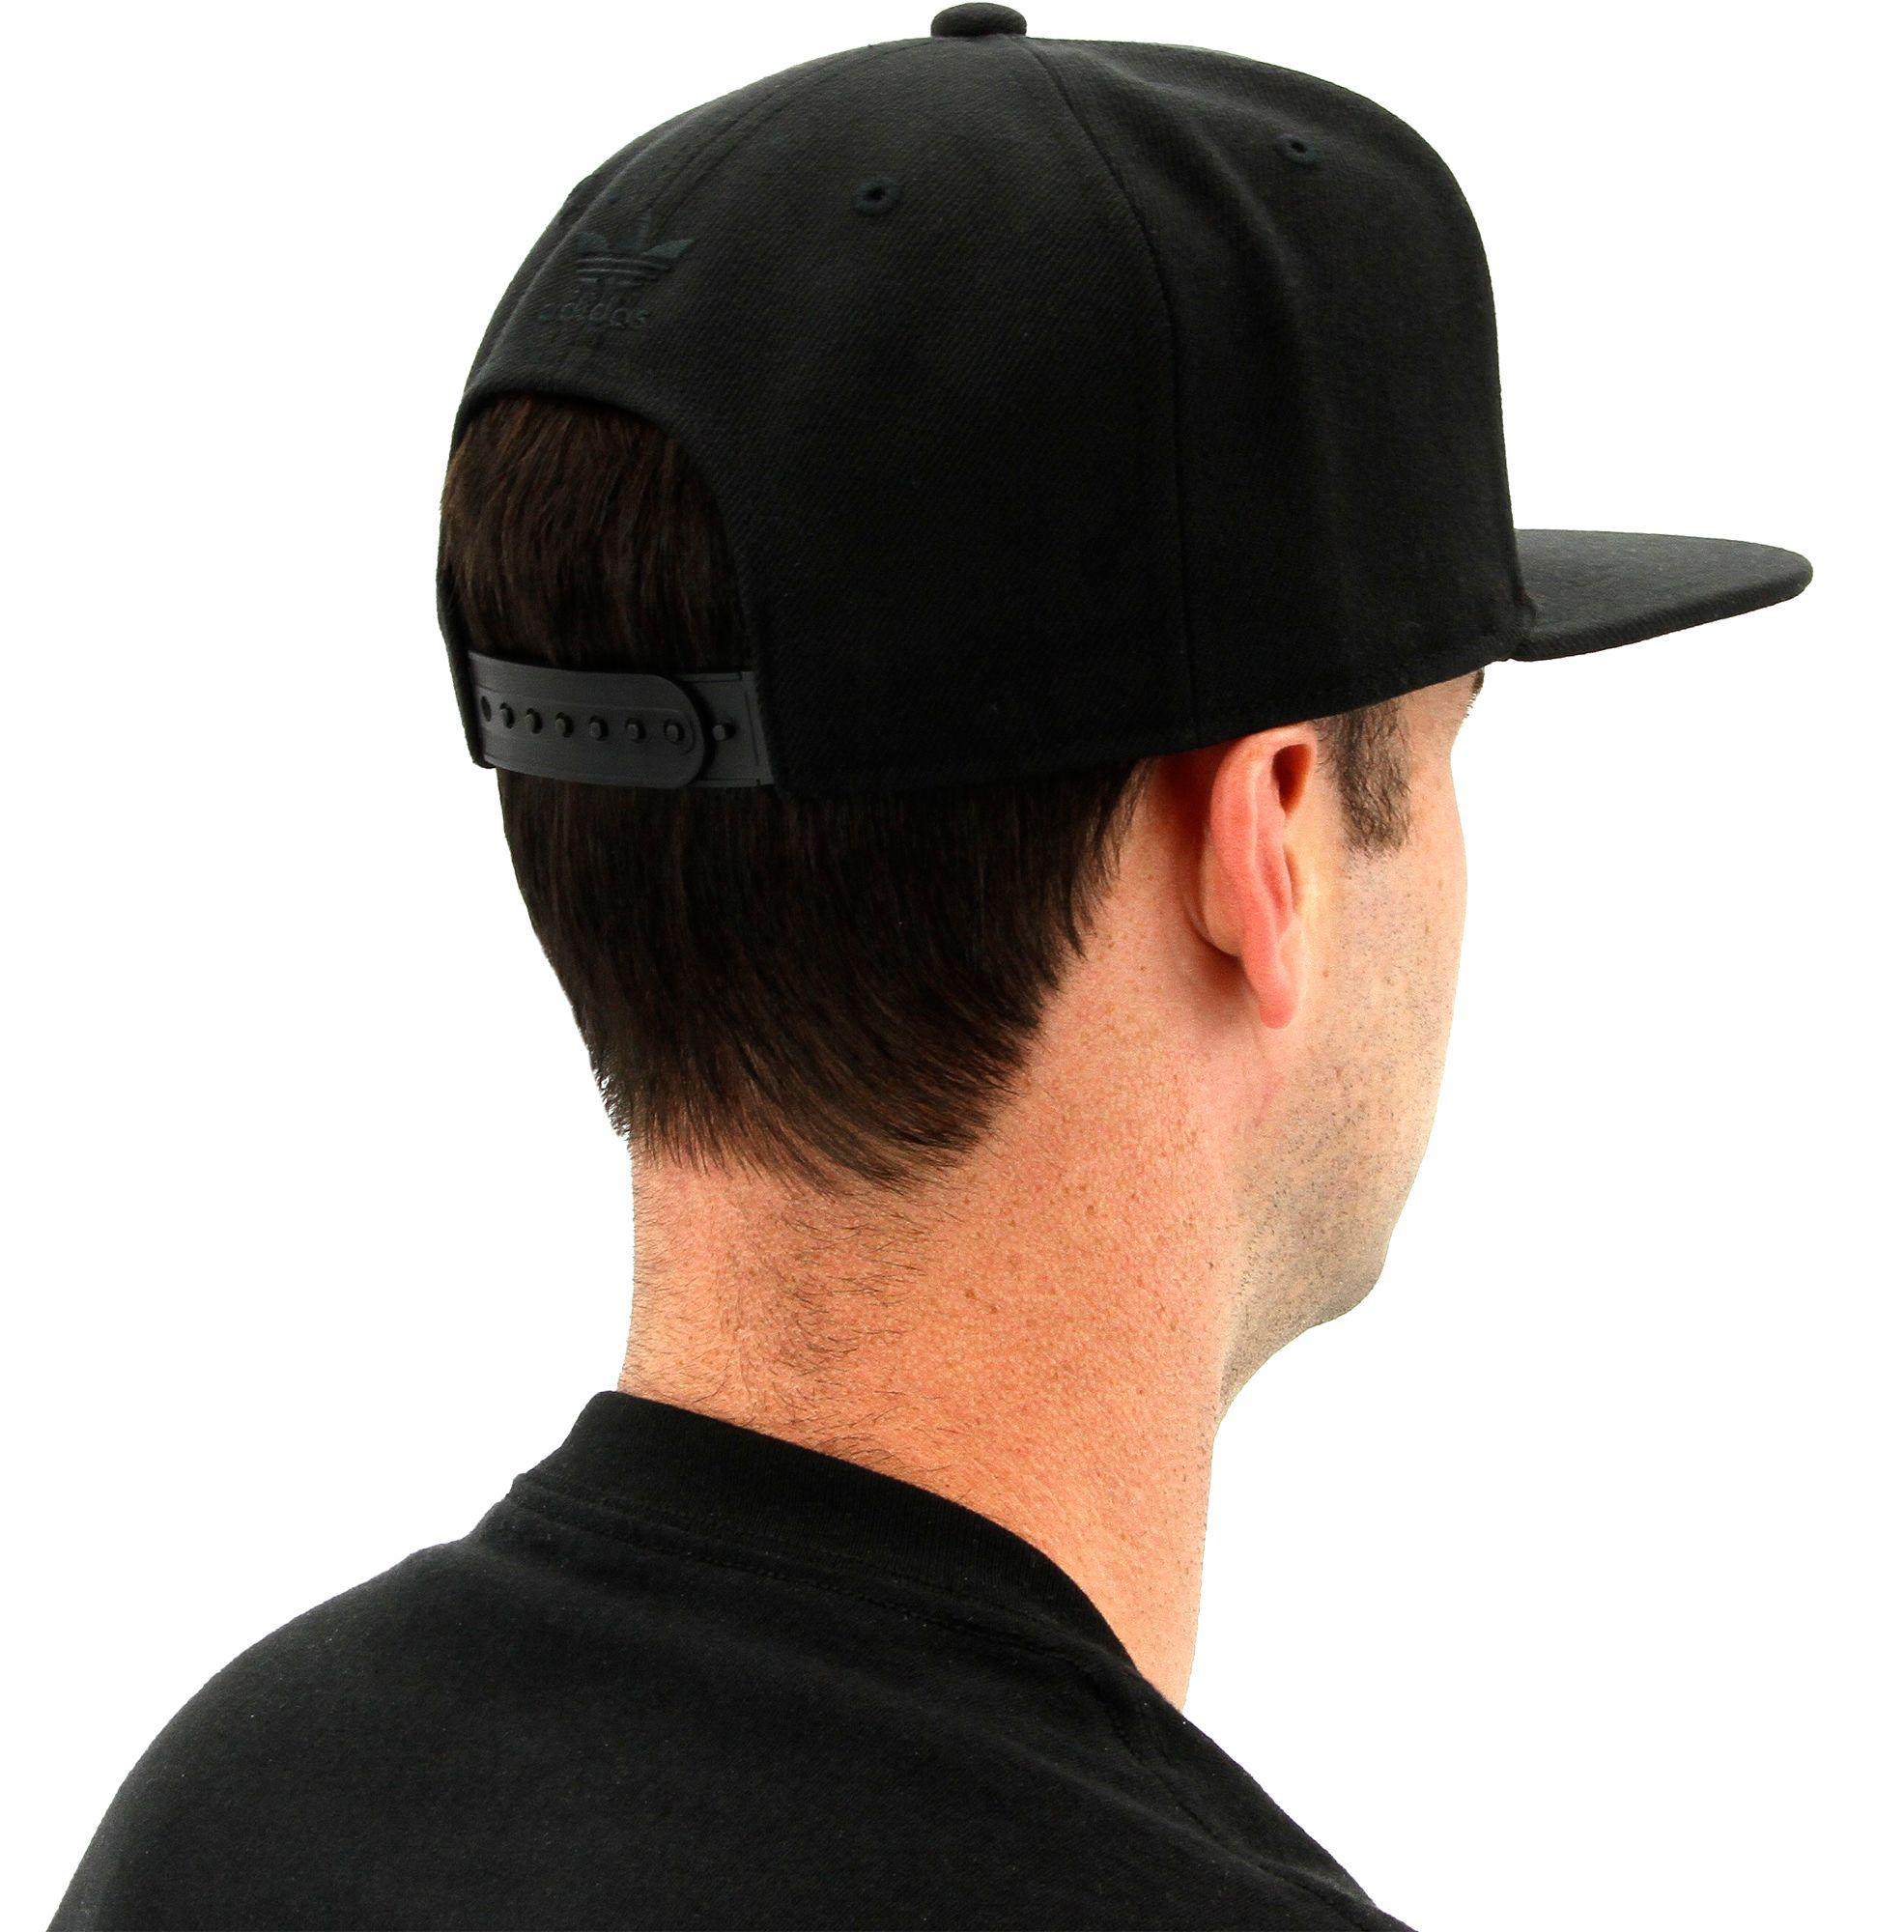 a550b5aa220 ... where to buy lyst adidas originals trefoil chain snapback hat in black  for men feba2 20021